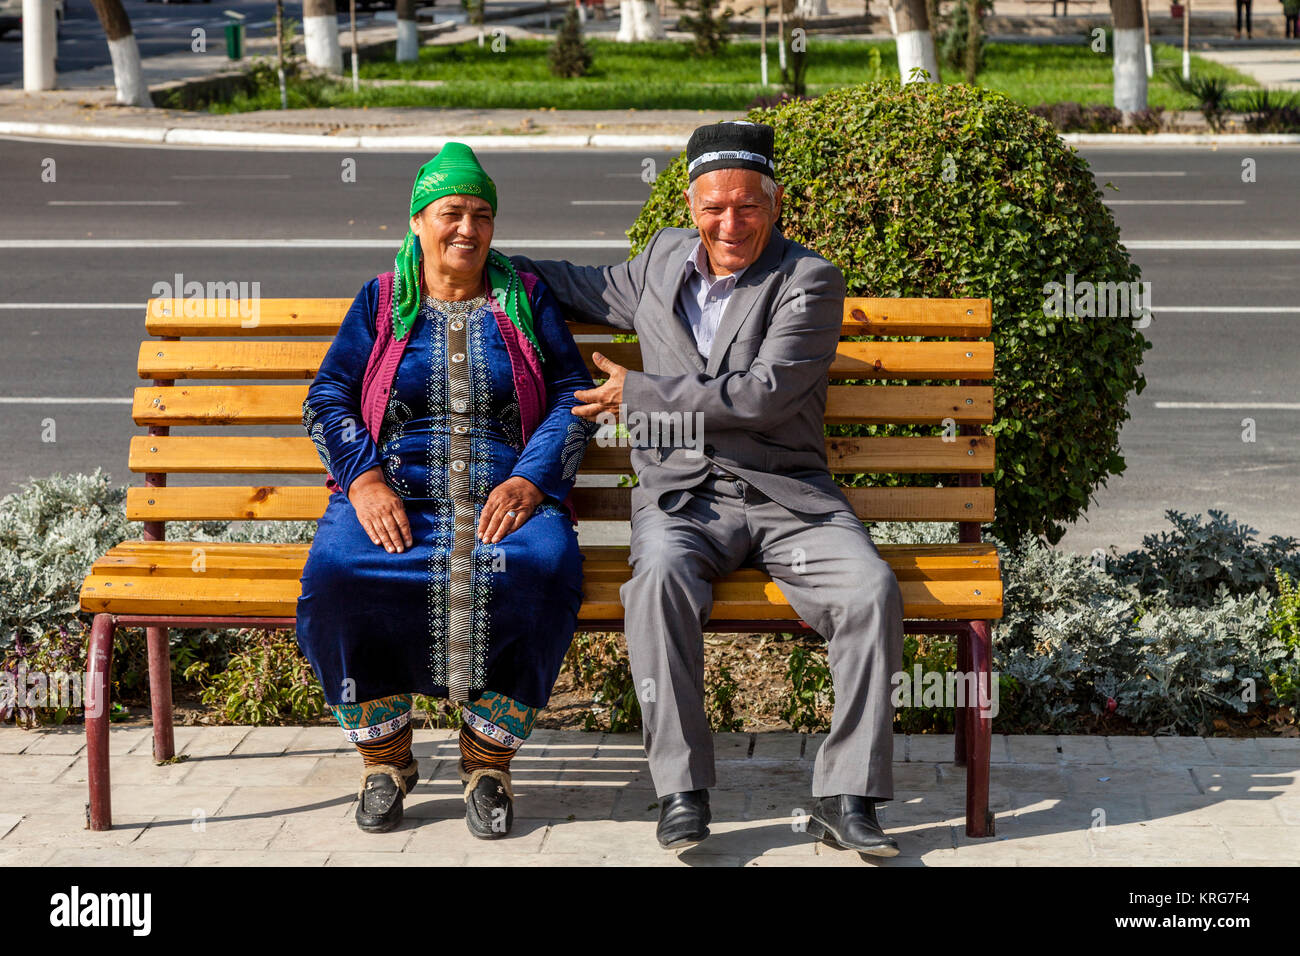 A Senior Uzbek Couple Sitting On A Bench, Bukhara, Uzbekistan Stock Photo